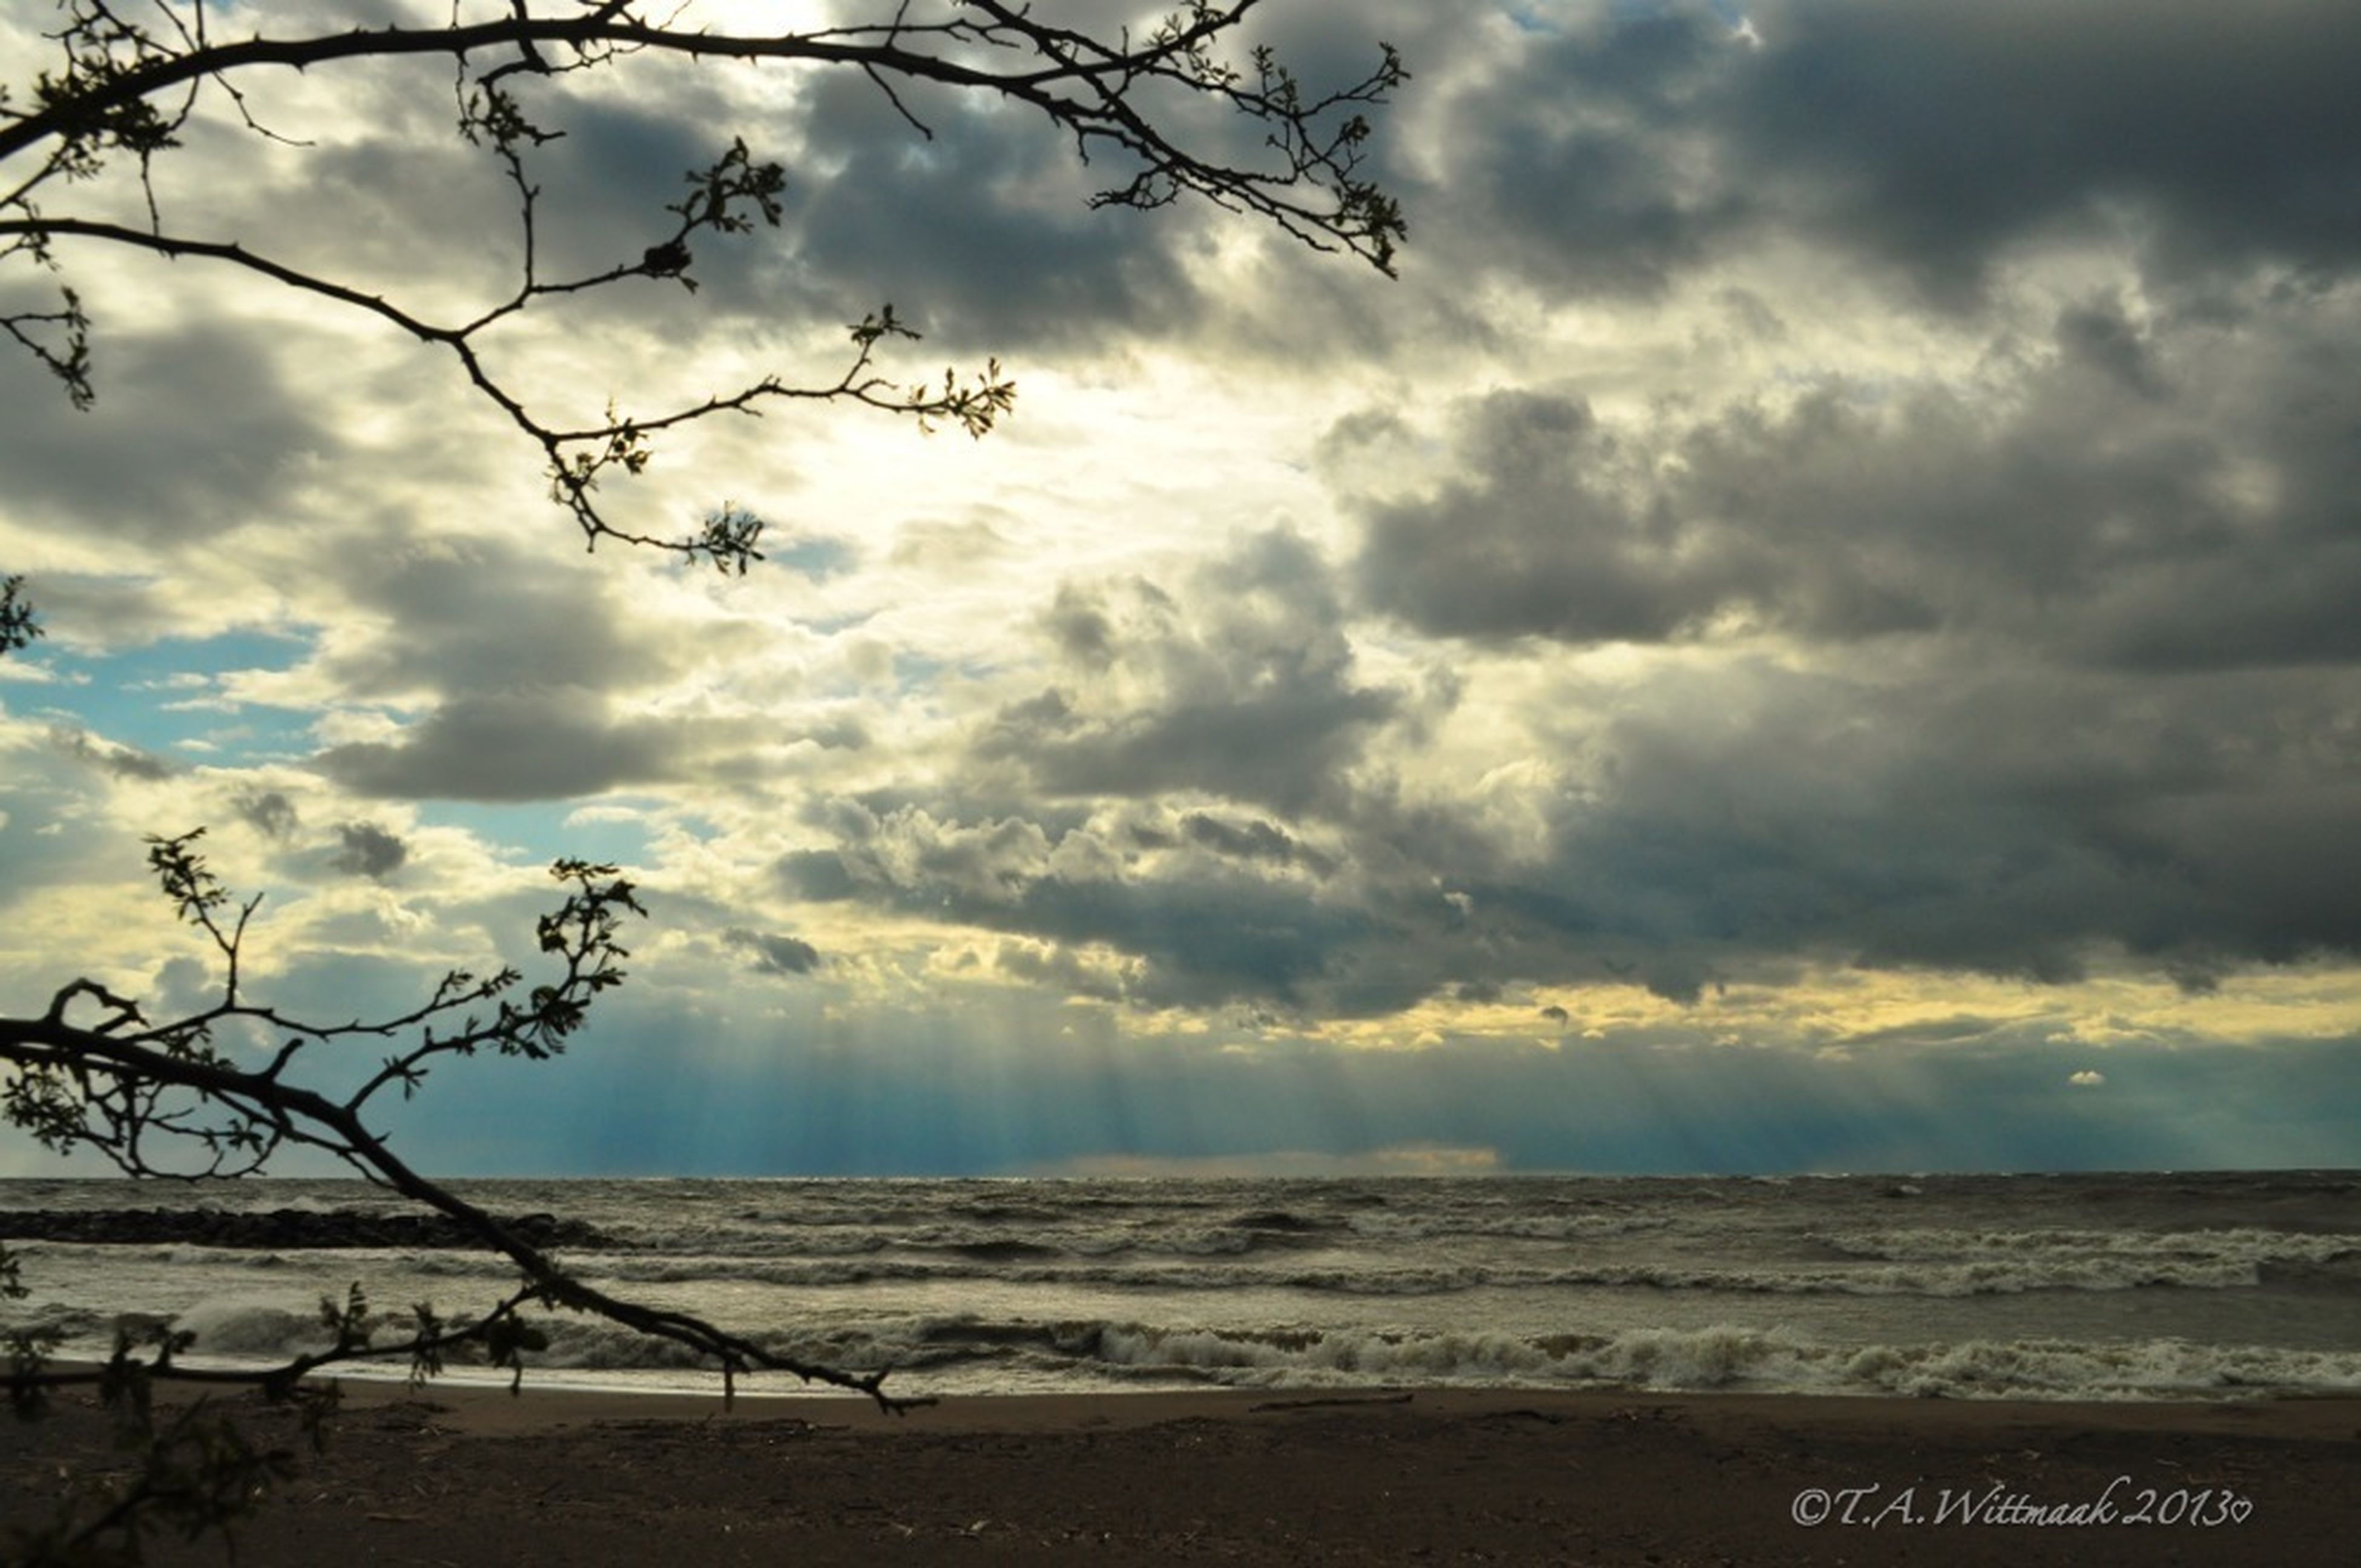 sky, cloud - sky, cloudy, tranquility, tranquil scene, scenics, weather, cloud, beauty in nature, nature, overcast, bare tree, landscape, tree, beach, dramatic sky, branch, sunset, storm cloud, idyllic